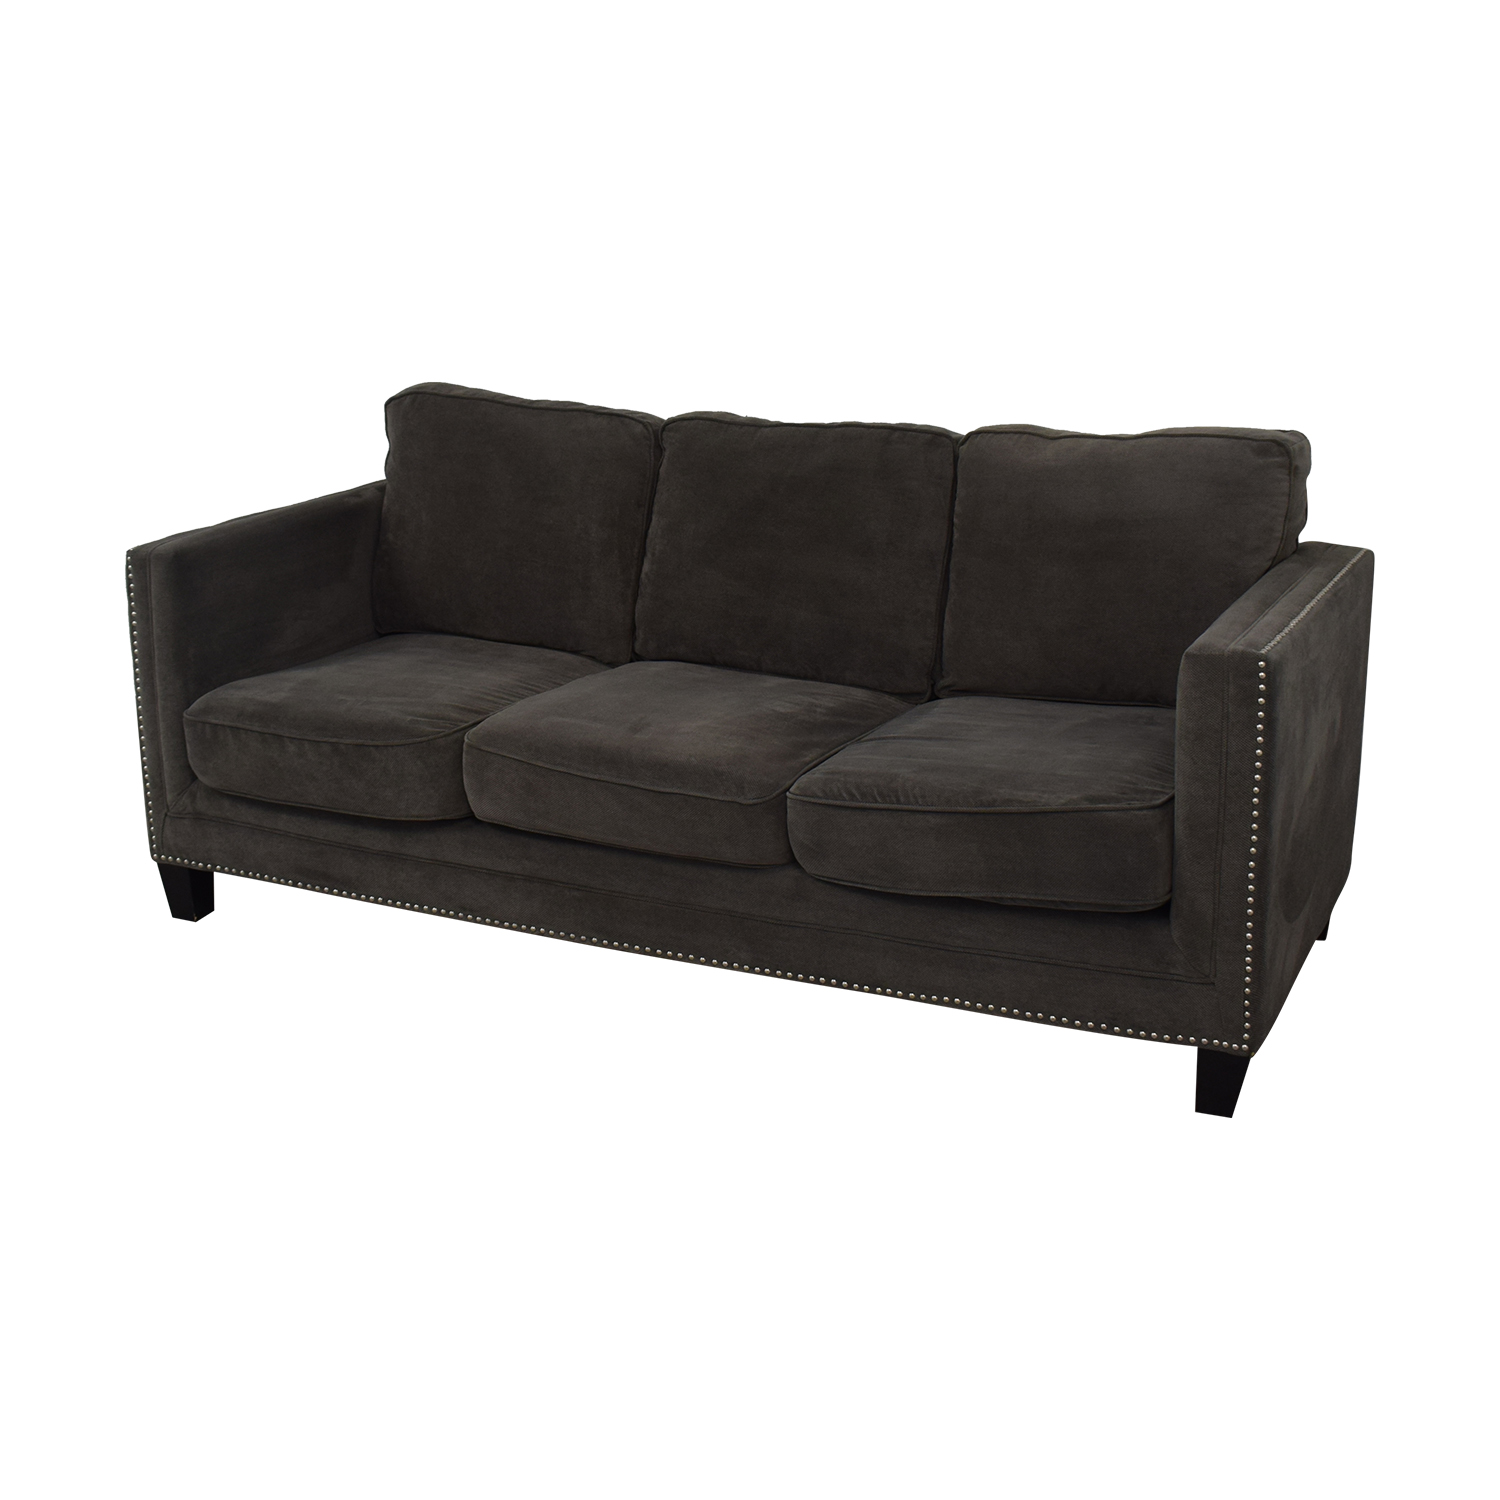 Emerald Home Furnishings Emerald Home Carlton Sofa nj